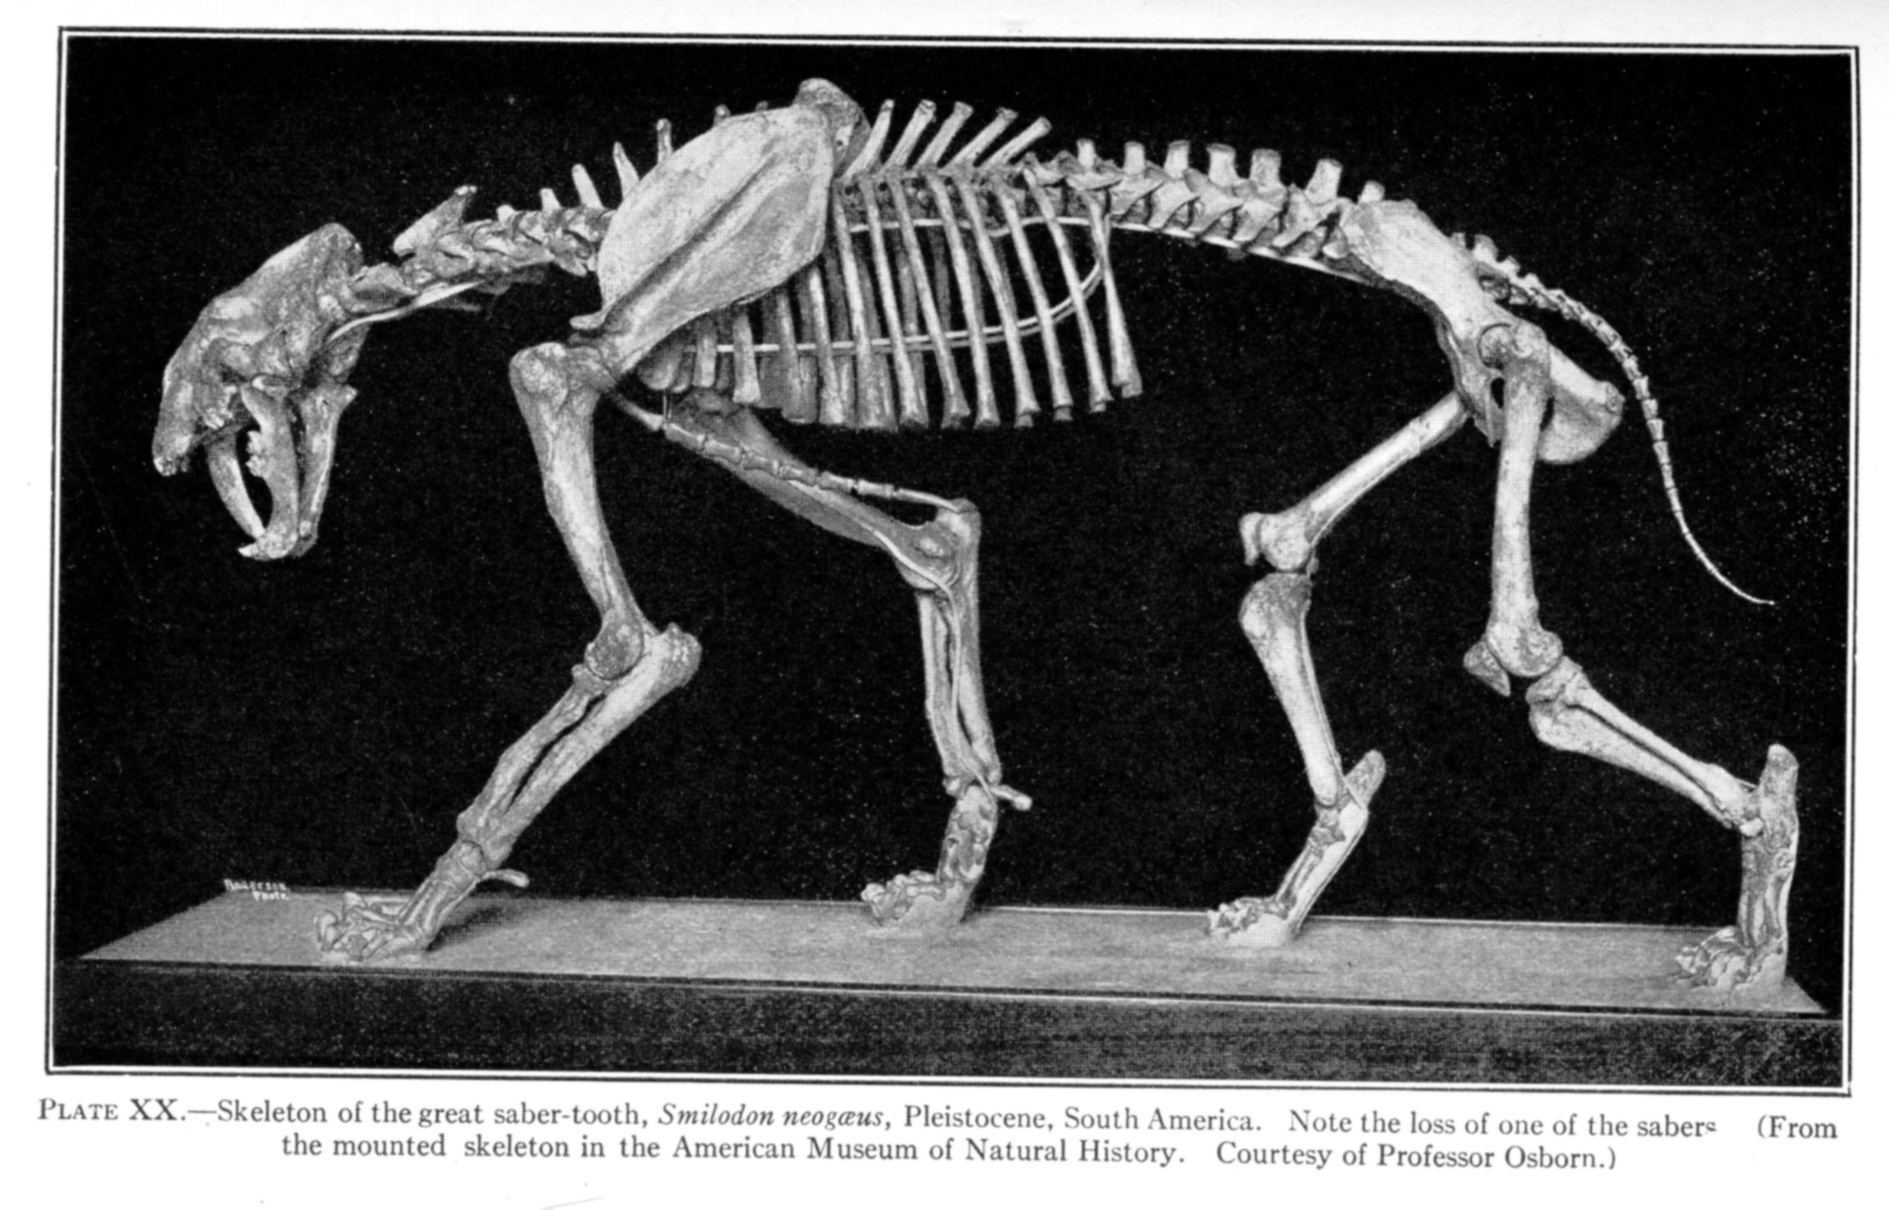 http://www.copyrightexpired.com/earlyimage/bones/large/large_lull_smilodon.jpg